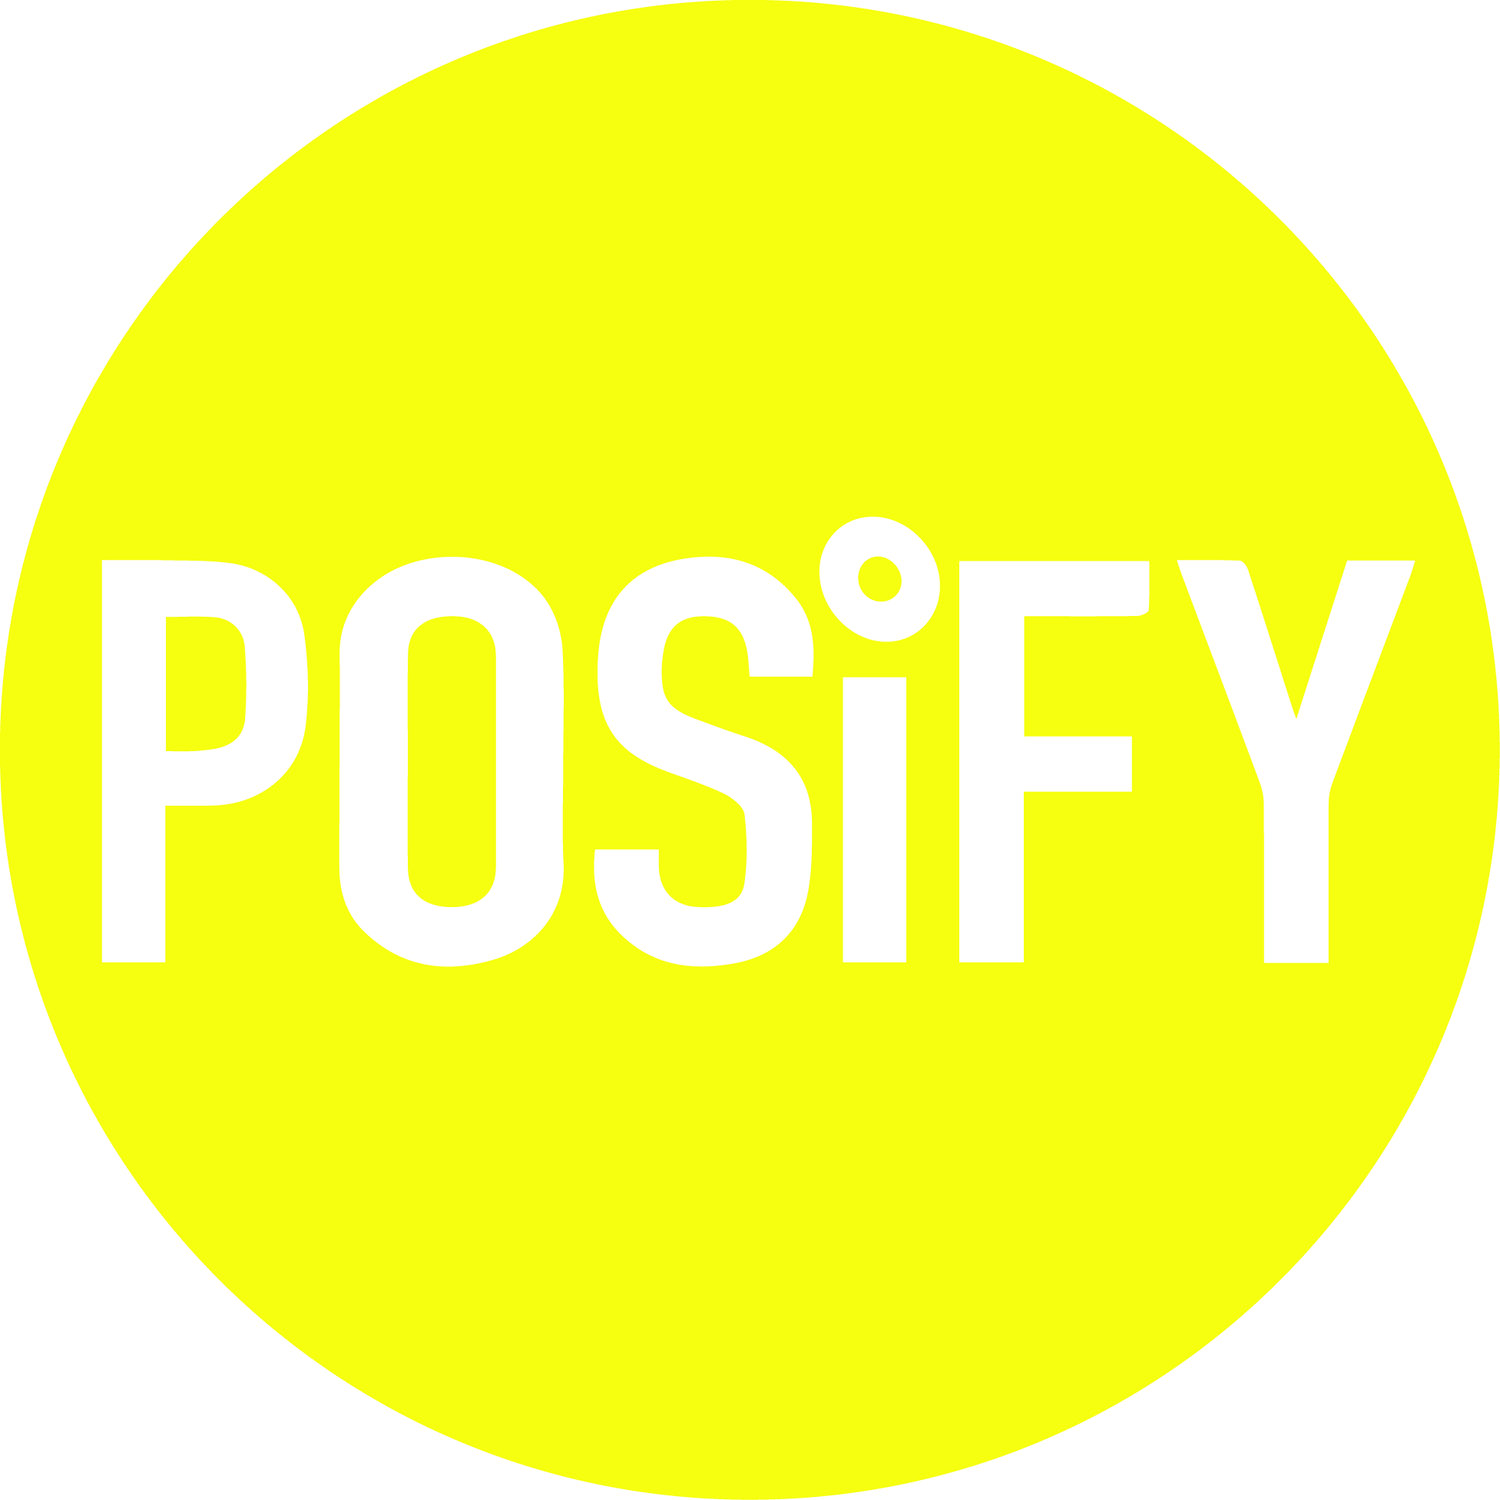 The Posify Group